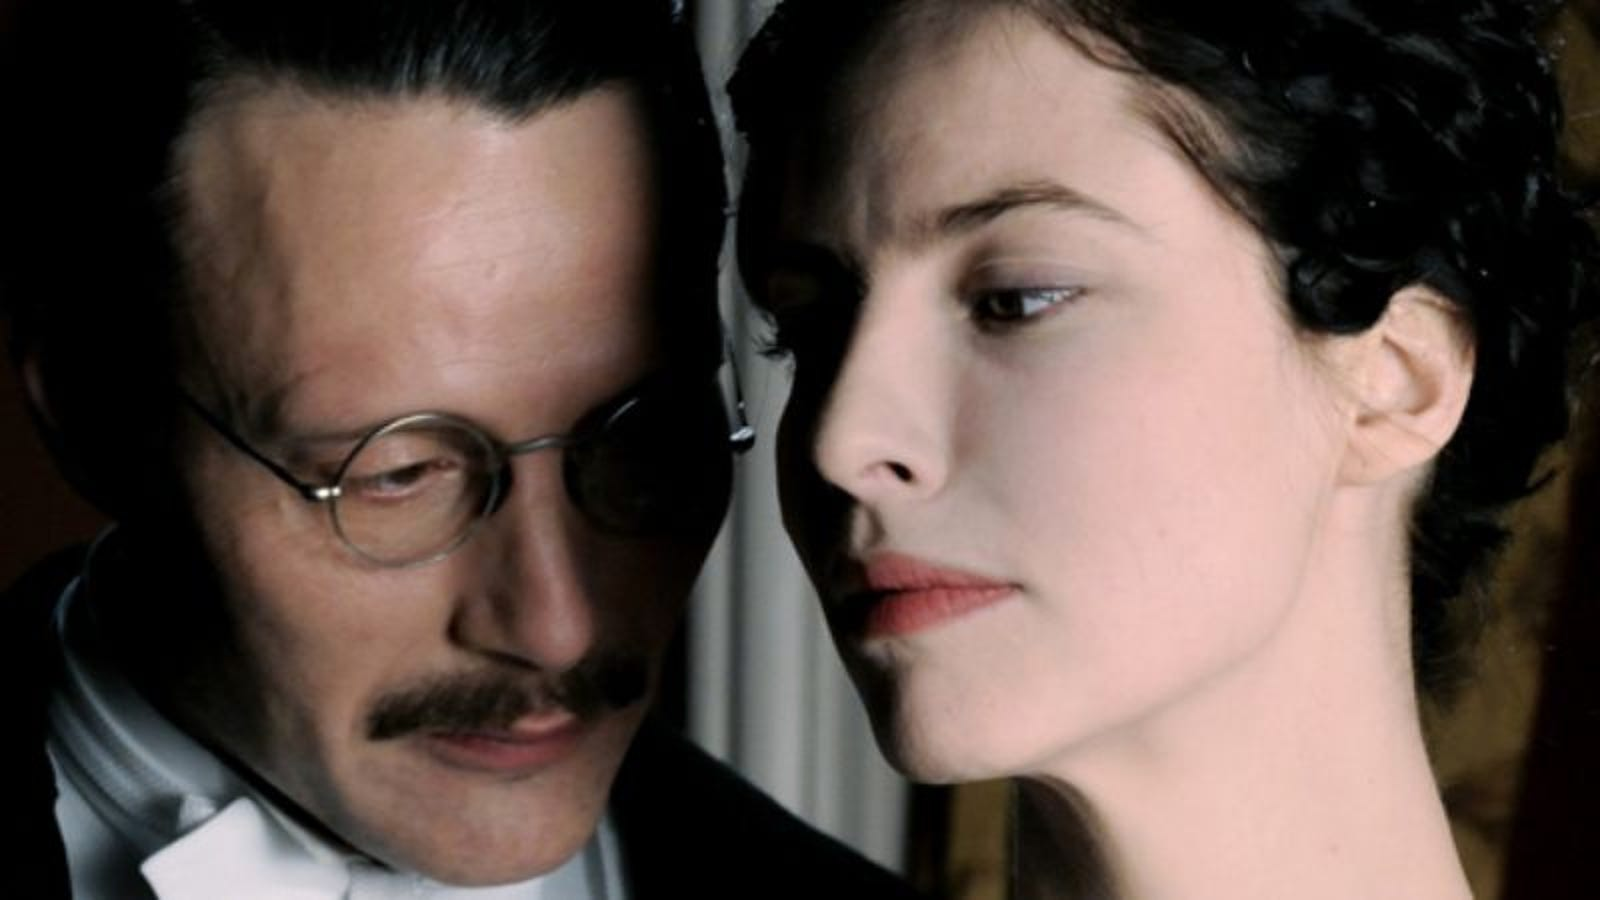 Fashion week Chanel coco and igor stravinsky film review for girls